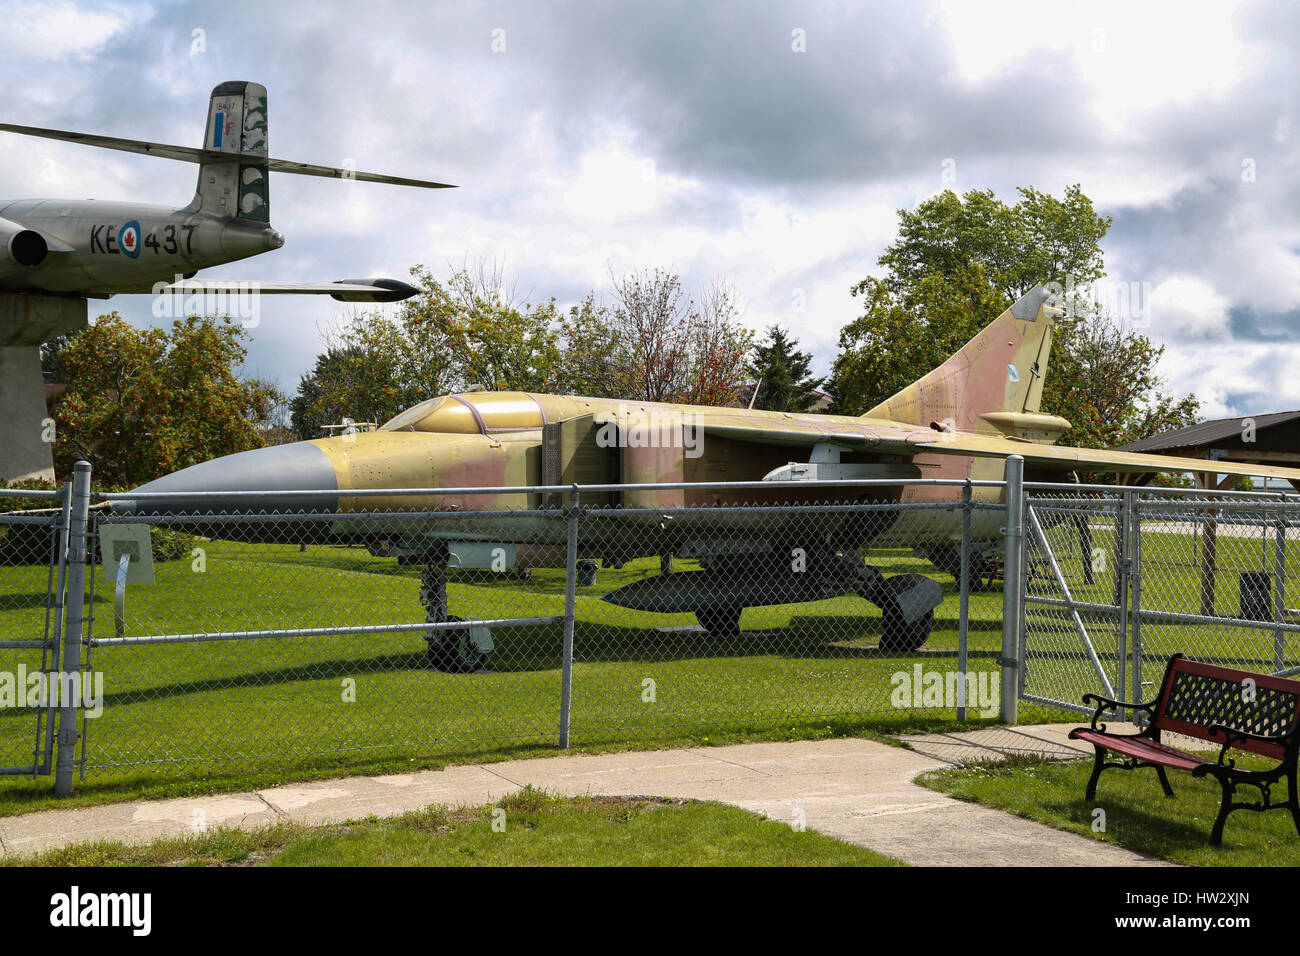 Mikoyan MiG-23 Flogger tactical fighter on Display at Air Defence Museum, CFB Bagotville, Saguenay, QC, Canada - Stock Image